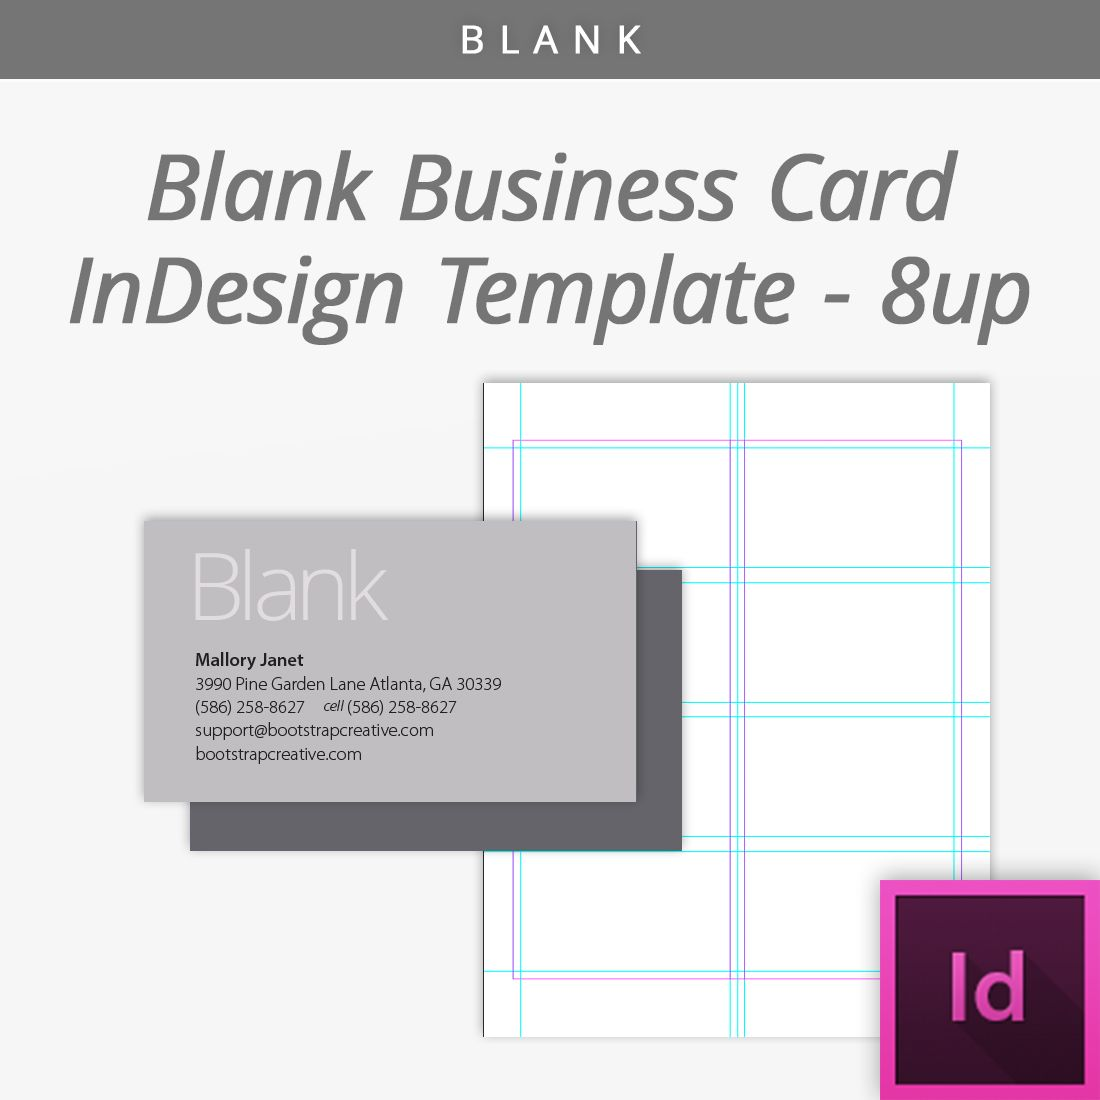 Blank indesign business card template 8 up free download blank indesign business card template 8 up free download designtemplate wajeb Choice Image